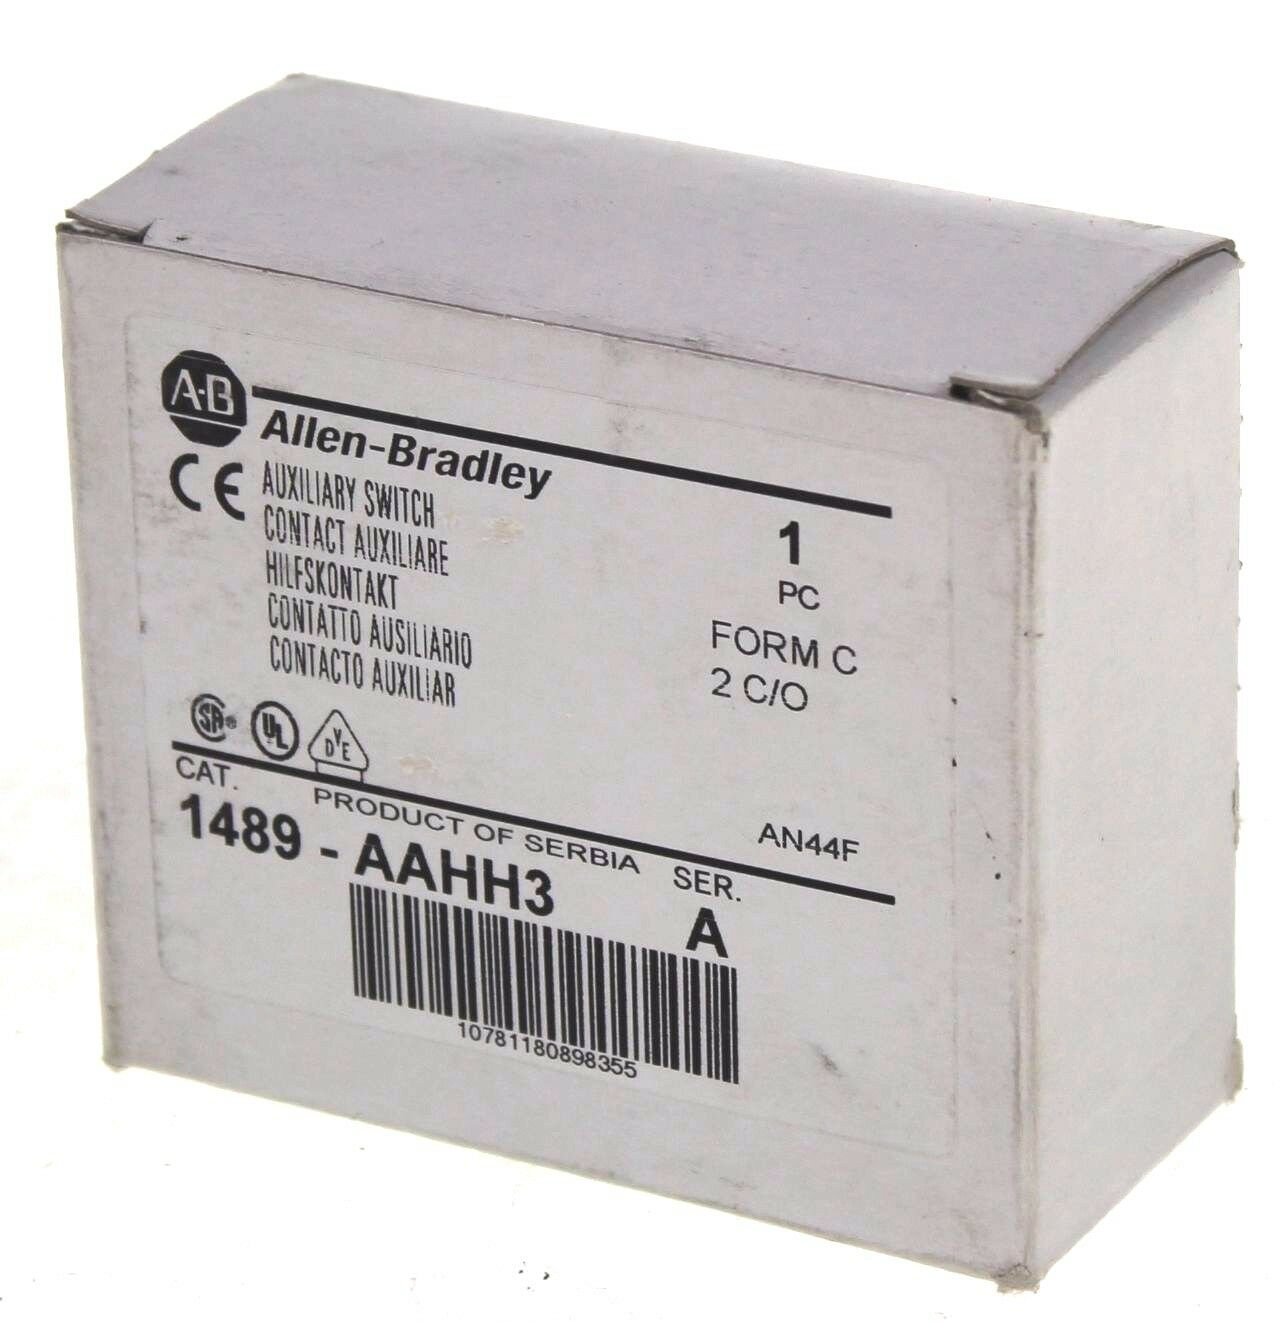 New Allen Bradley 1489-AAHH3 Series A Auxiliary Switch